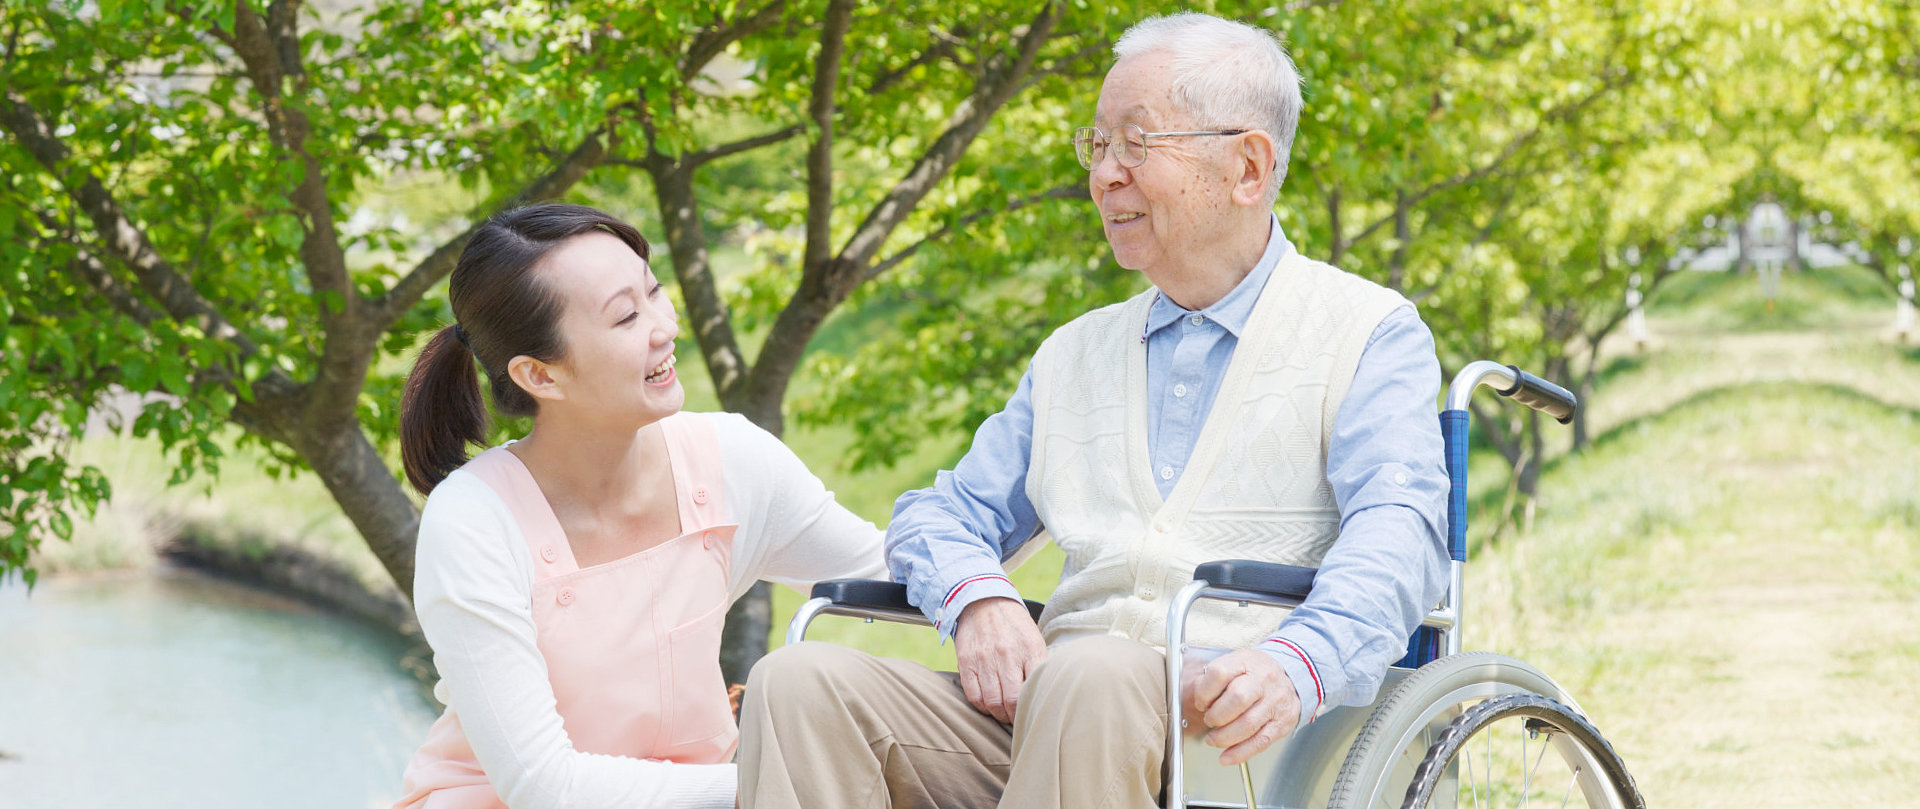 female caregiver with senior man on wheelchair smiling